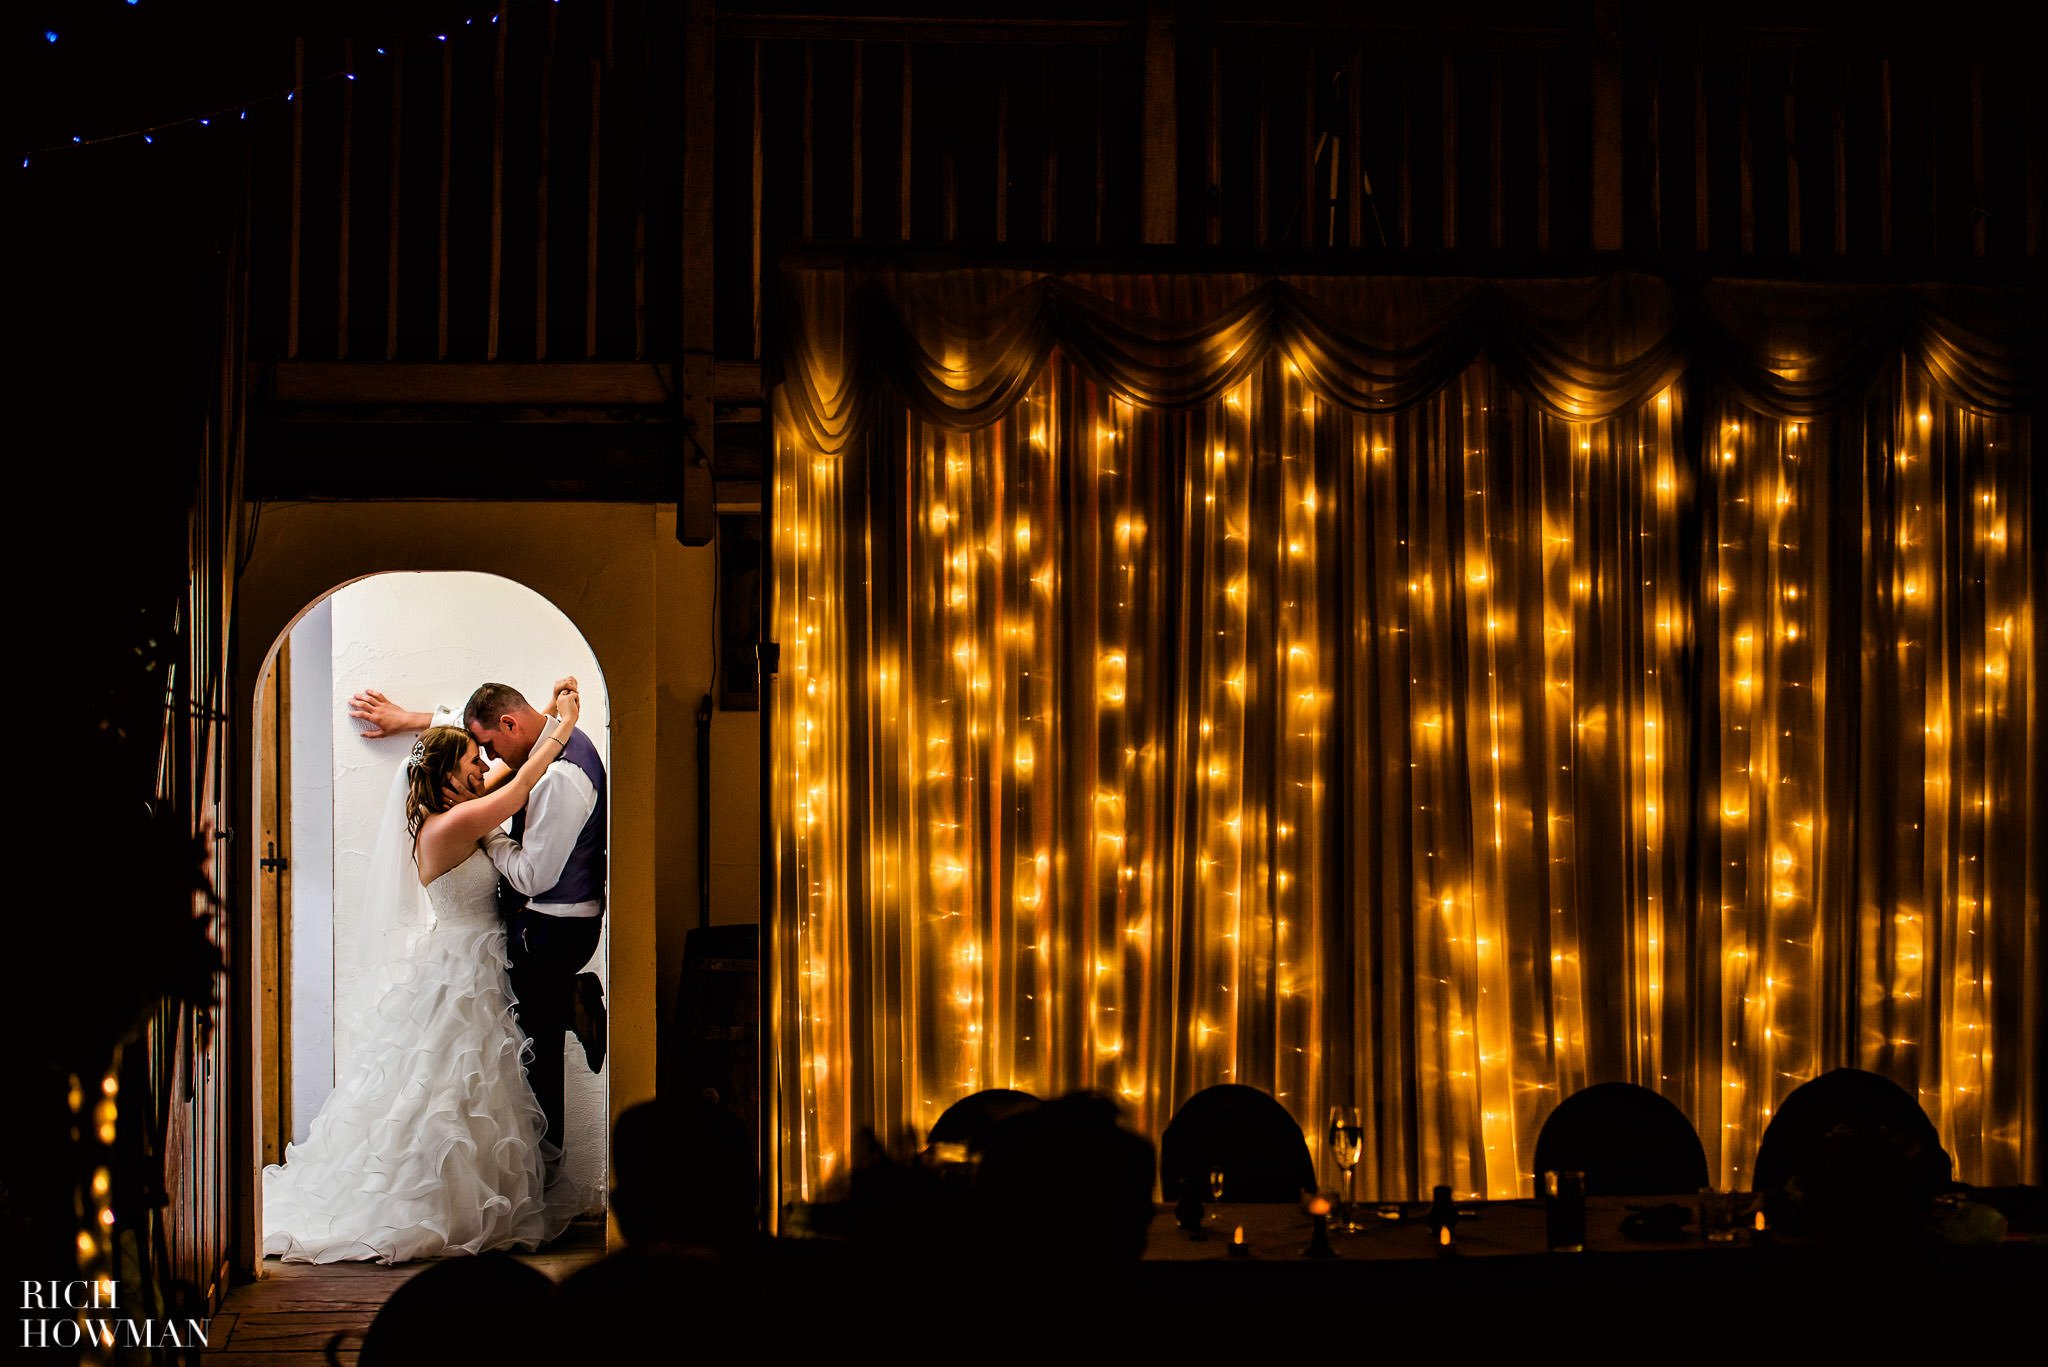 Couple snuggling in a doorway during their wedding